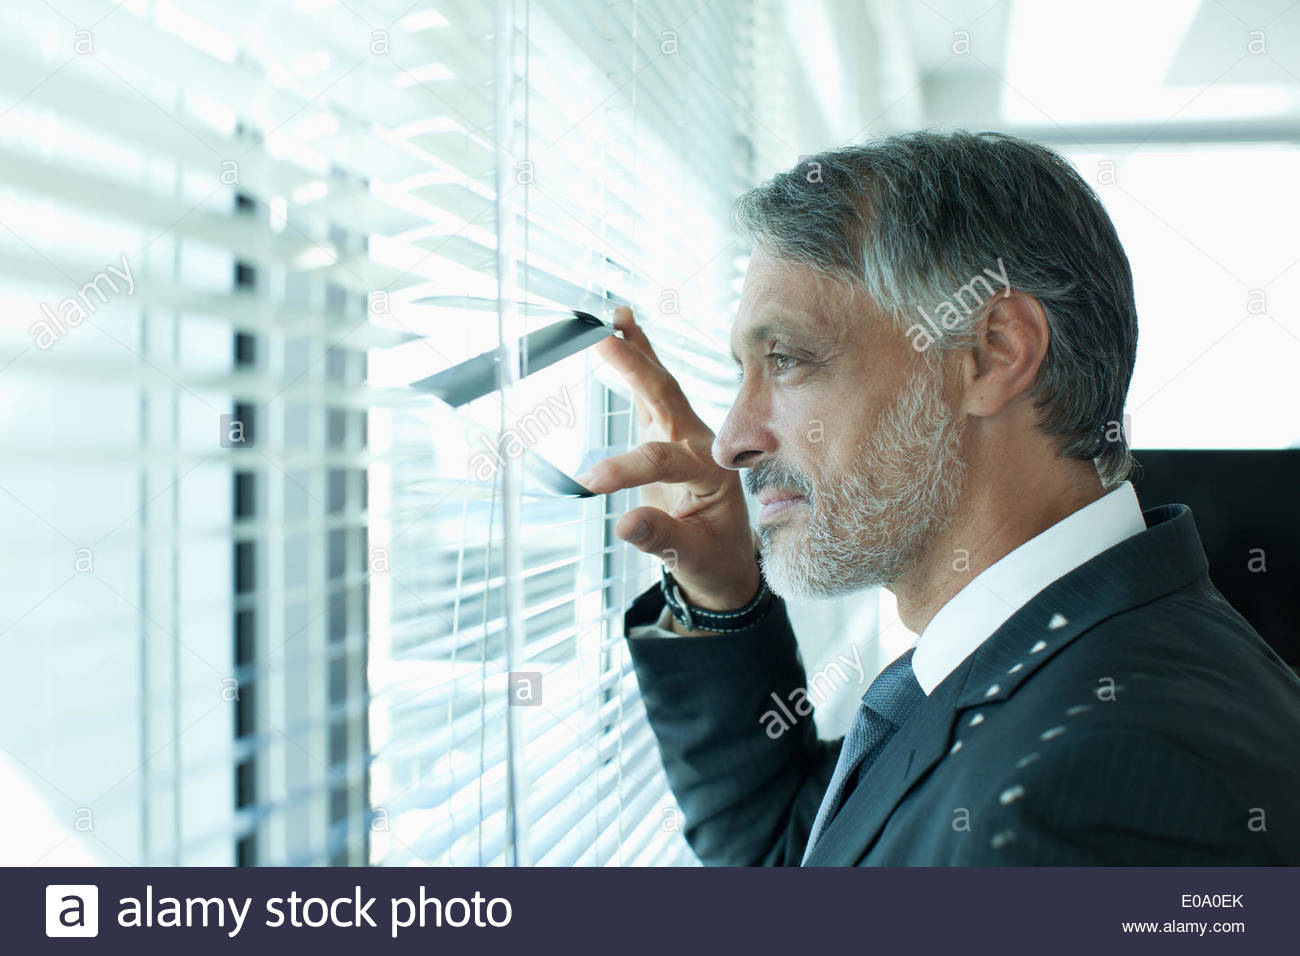 Portrait of businessman at window Photo Stock